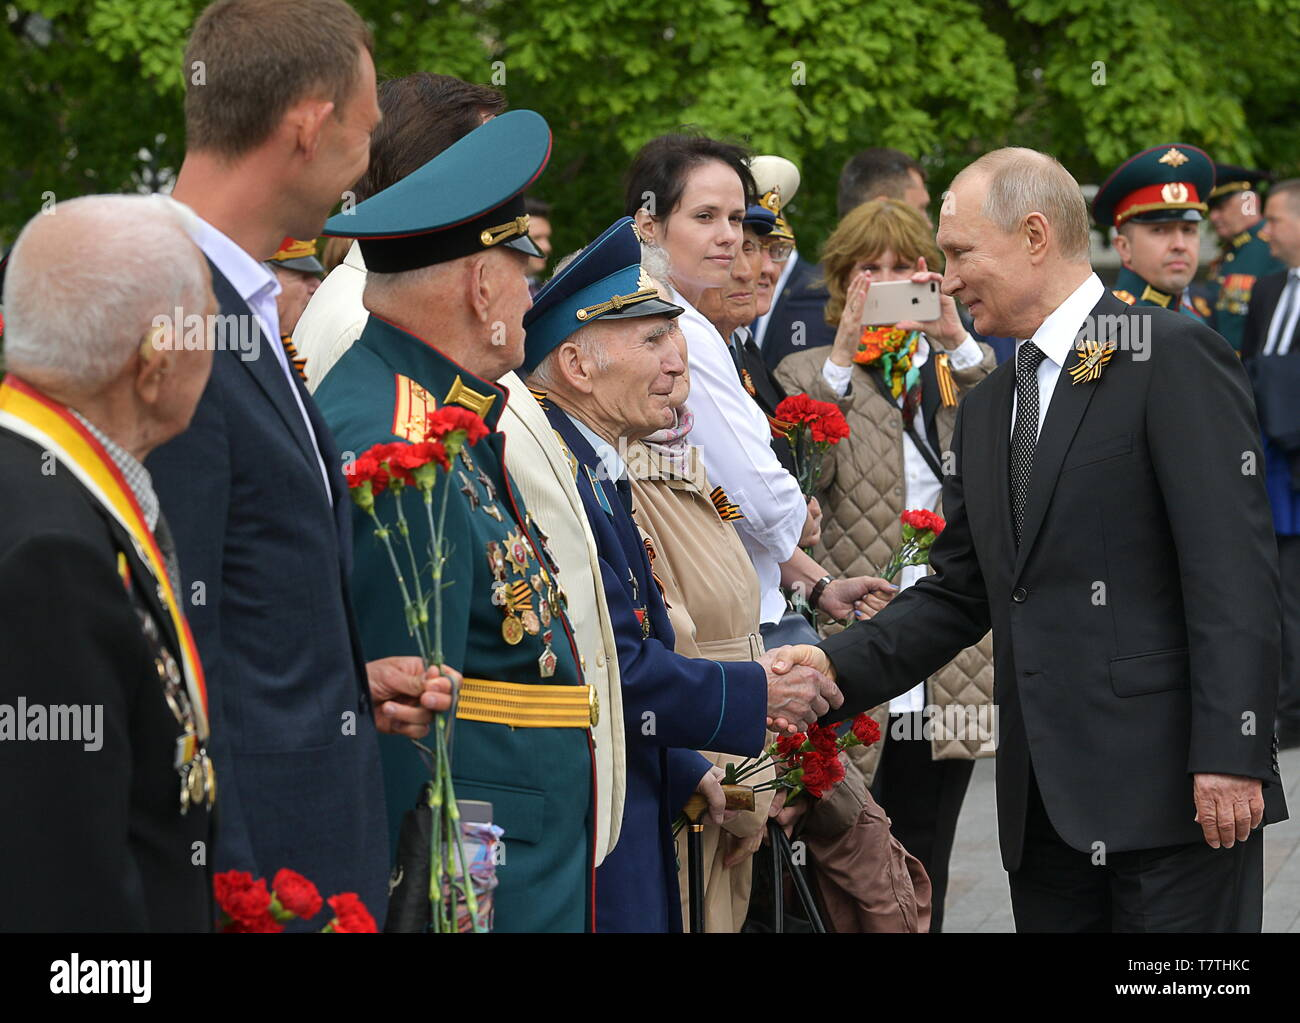 Moscow, Russia. 09th May, 2019. MOSCOW, RUSSIA - MAY 9, 2019: Russia's President Vladimir Putin (R) greets WWII veterans agead of a ceremony to lay flowers at the Tomb of the Unknown Soldier by the Kremlin Wall during celebrations marking the 74th anniversary of the victory of the Soviet Red Army over Nazi Germany in the Great Patriotic War of 1941-45, the Eastern Front of the Second World War. Alexei Druzhinin/Russian Presidential Press and Information Office/TASS Credit: ITAR-TASS News Agency/Alamy Live News - Stock Image